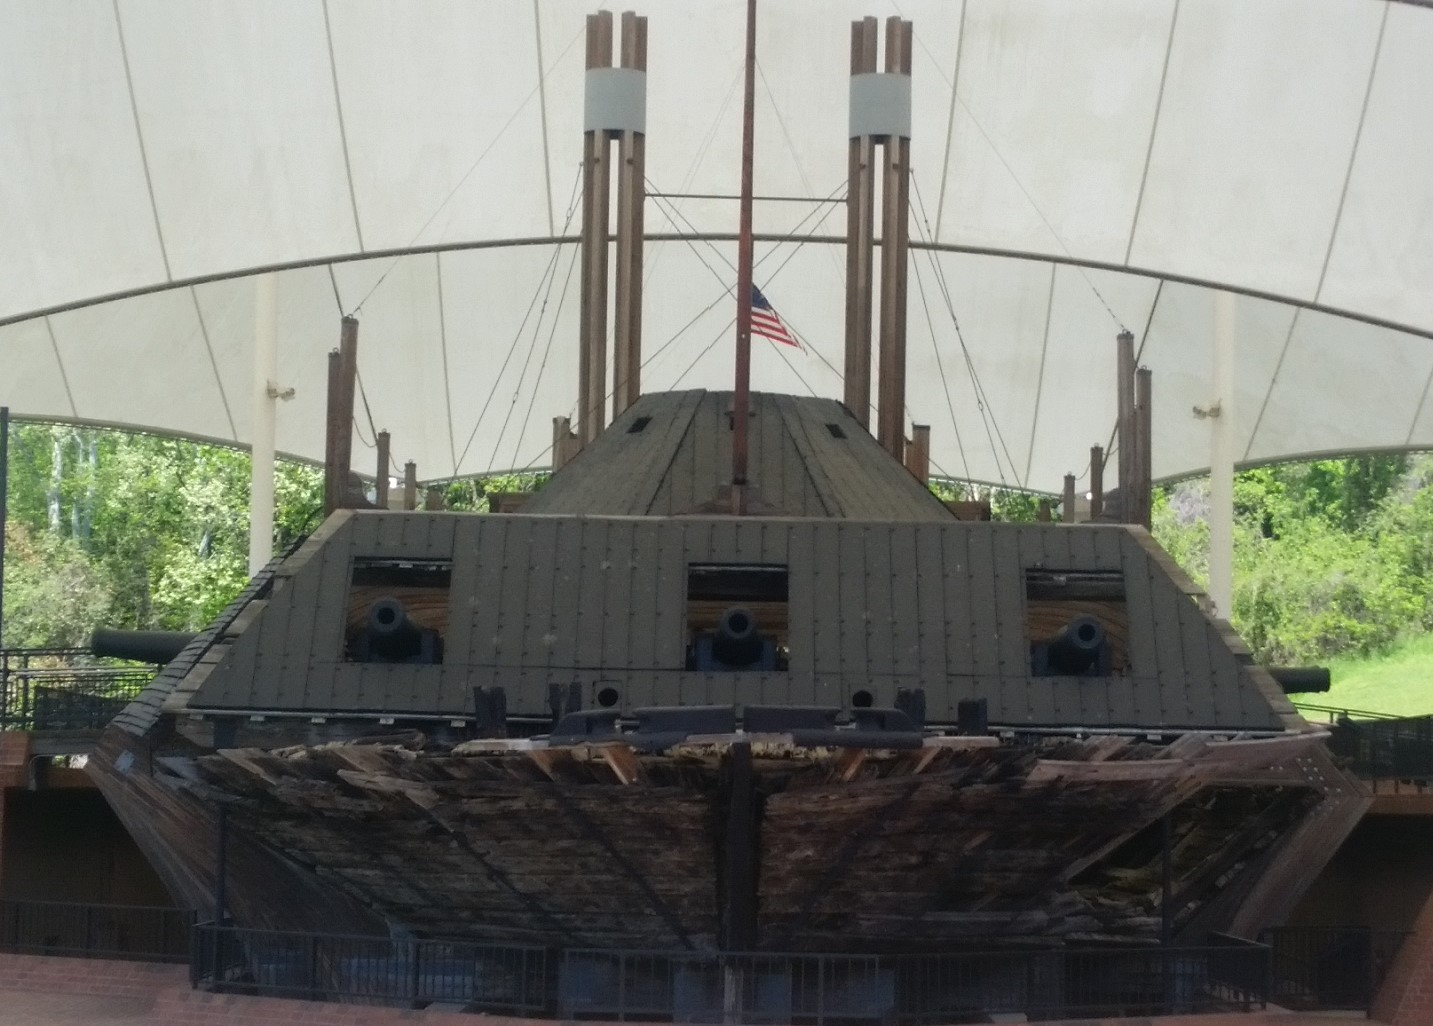 USS Cairo sunk by a mine in 1864 and raised to the surface in 1965.